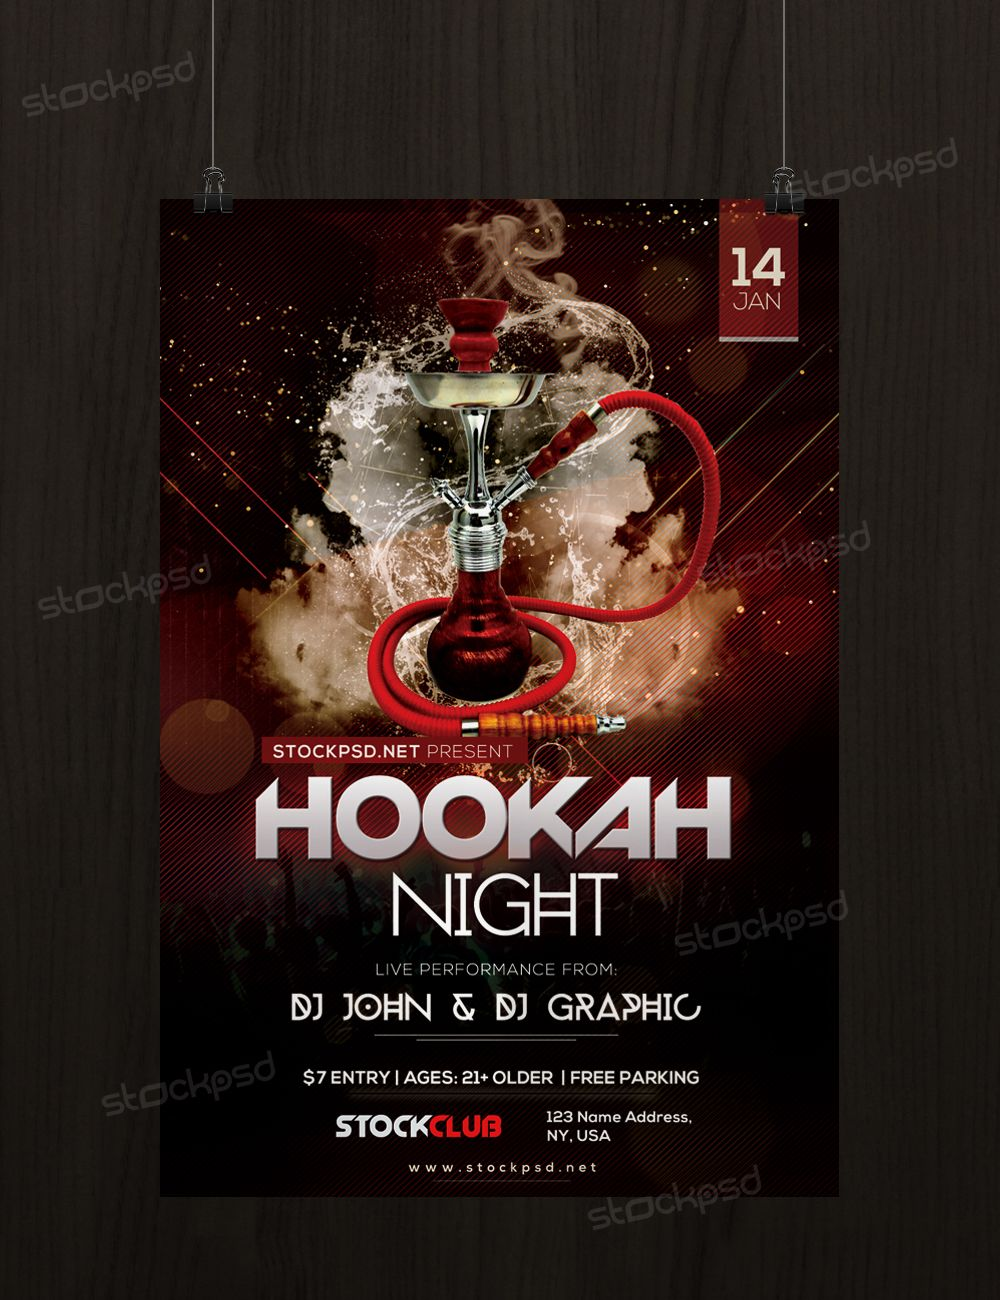 hookah shisha online coupons As the leading online resource for hookahs, hookah accessories and hookah parts, hookah shisha central has the largest variety and the tastiest flavors of shisha tobacco you'll fi more » hookah shisha central store info shipping inforeturns & exchangesstore locator today's hookah shisha central top offers.